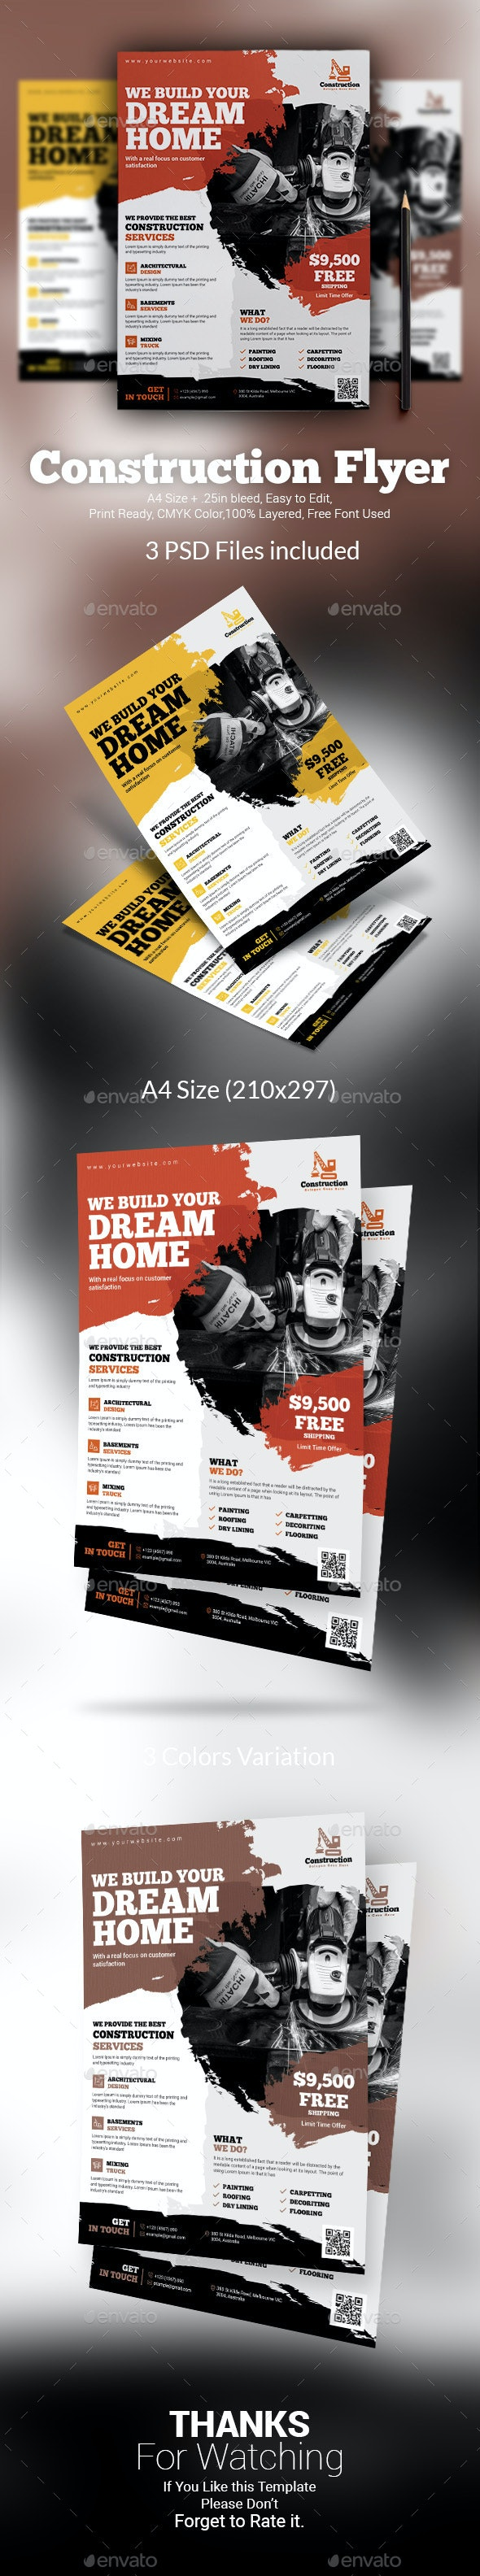 Construction Flyer Template - Commerce Flyers